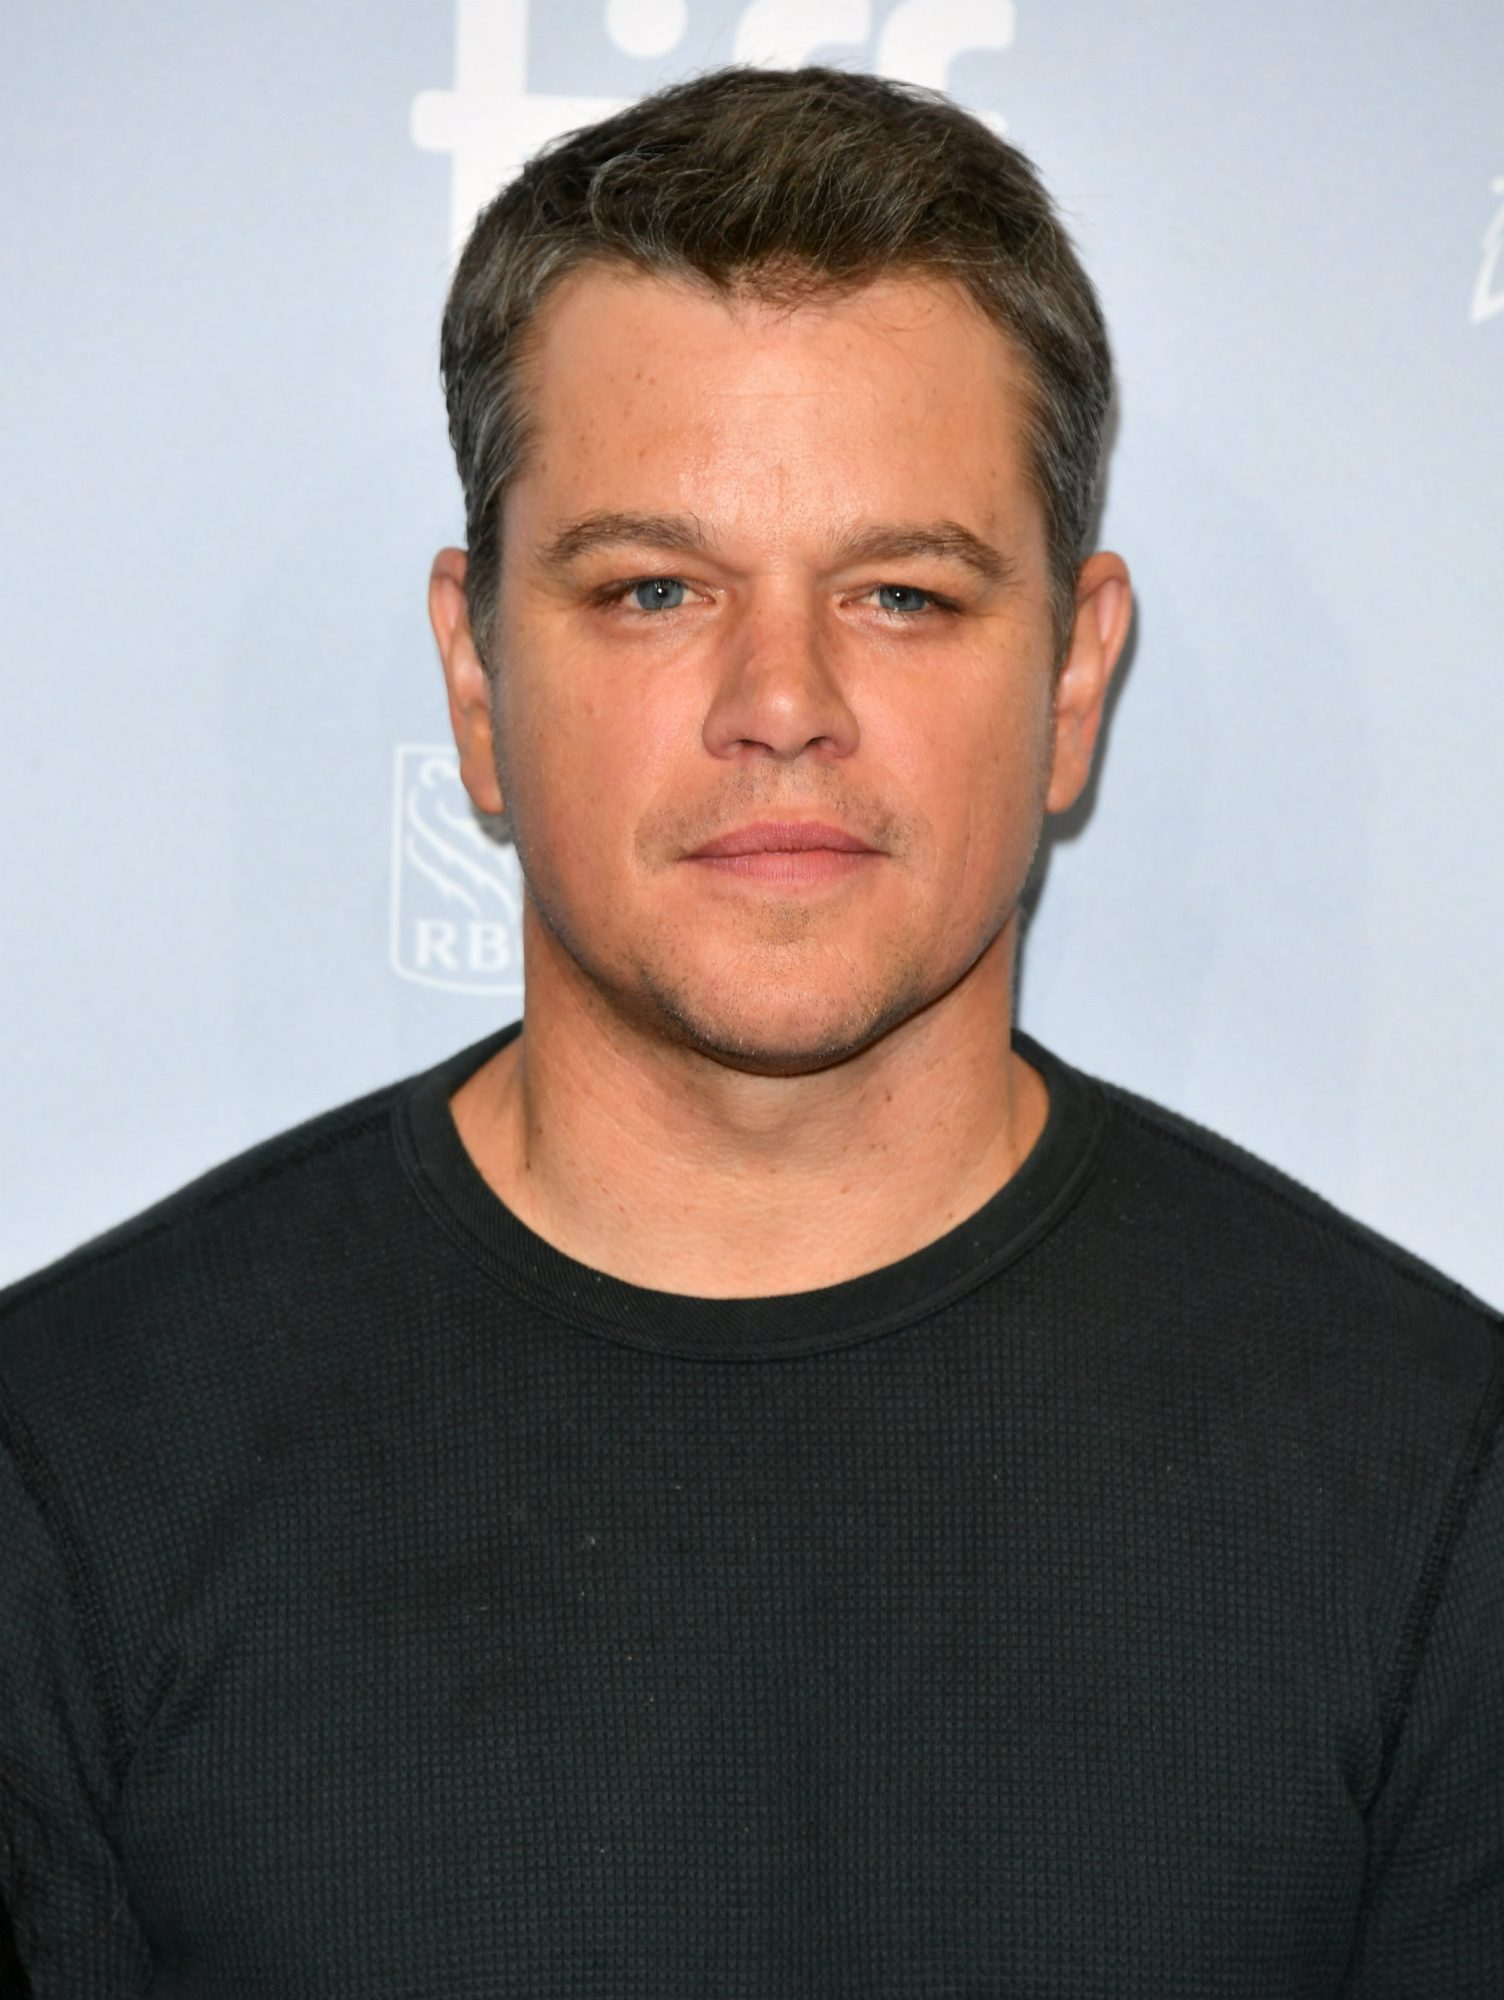 Matt Damon - Lead